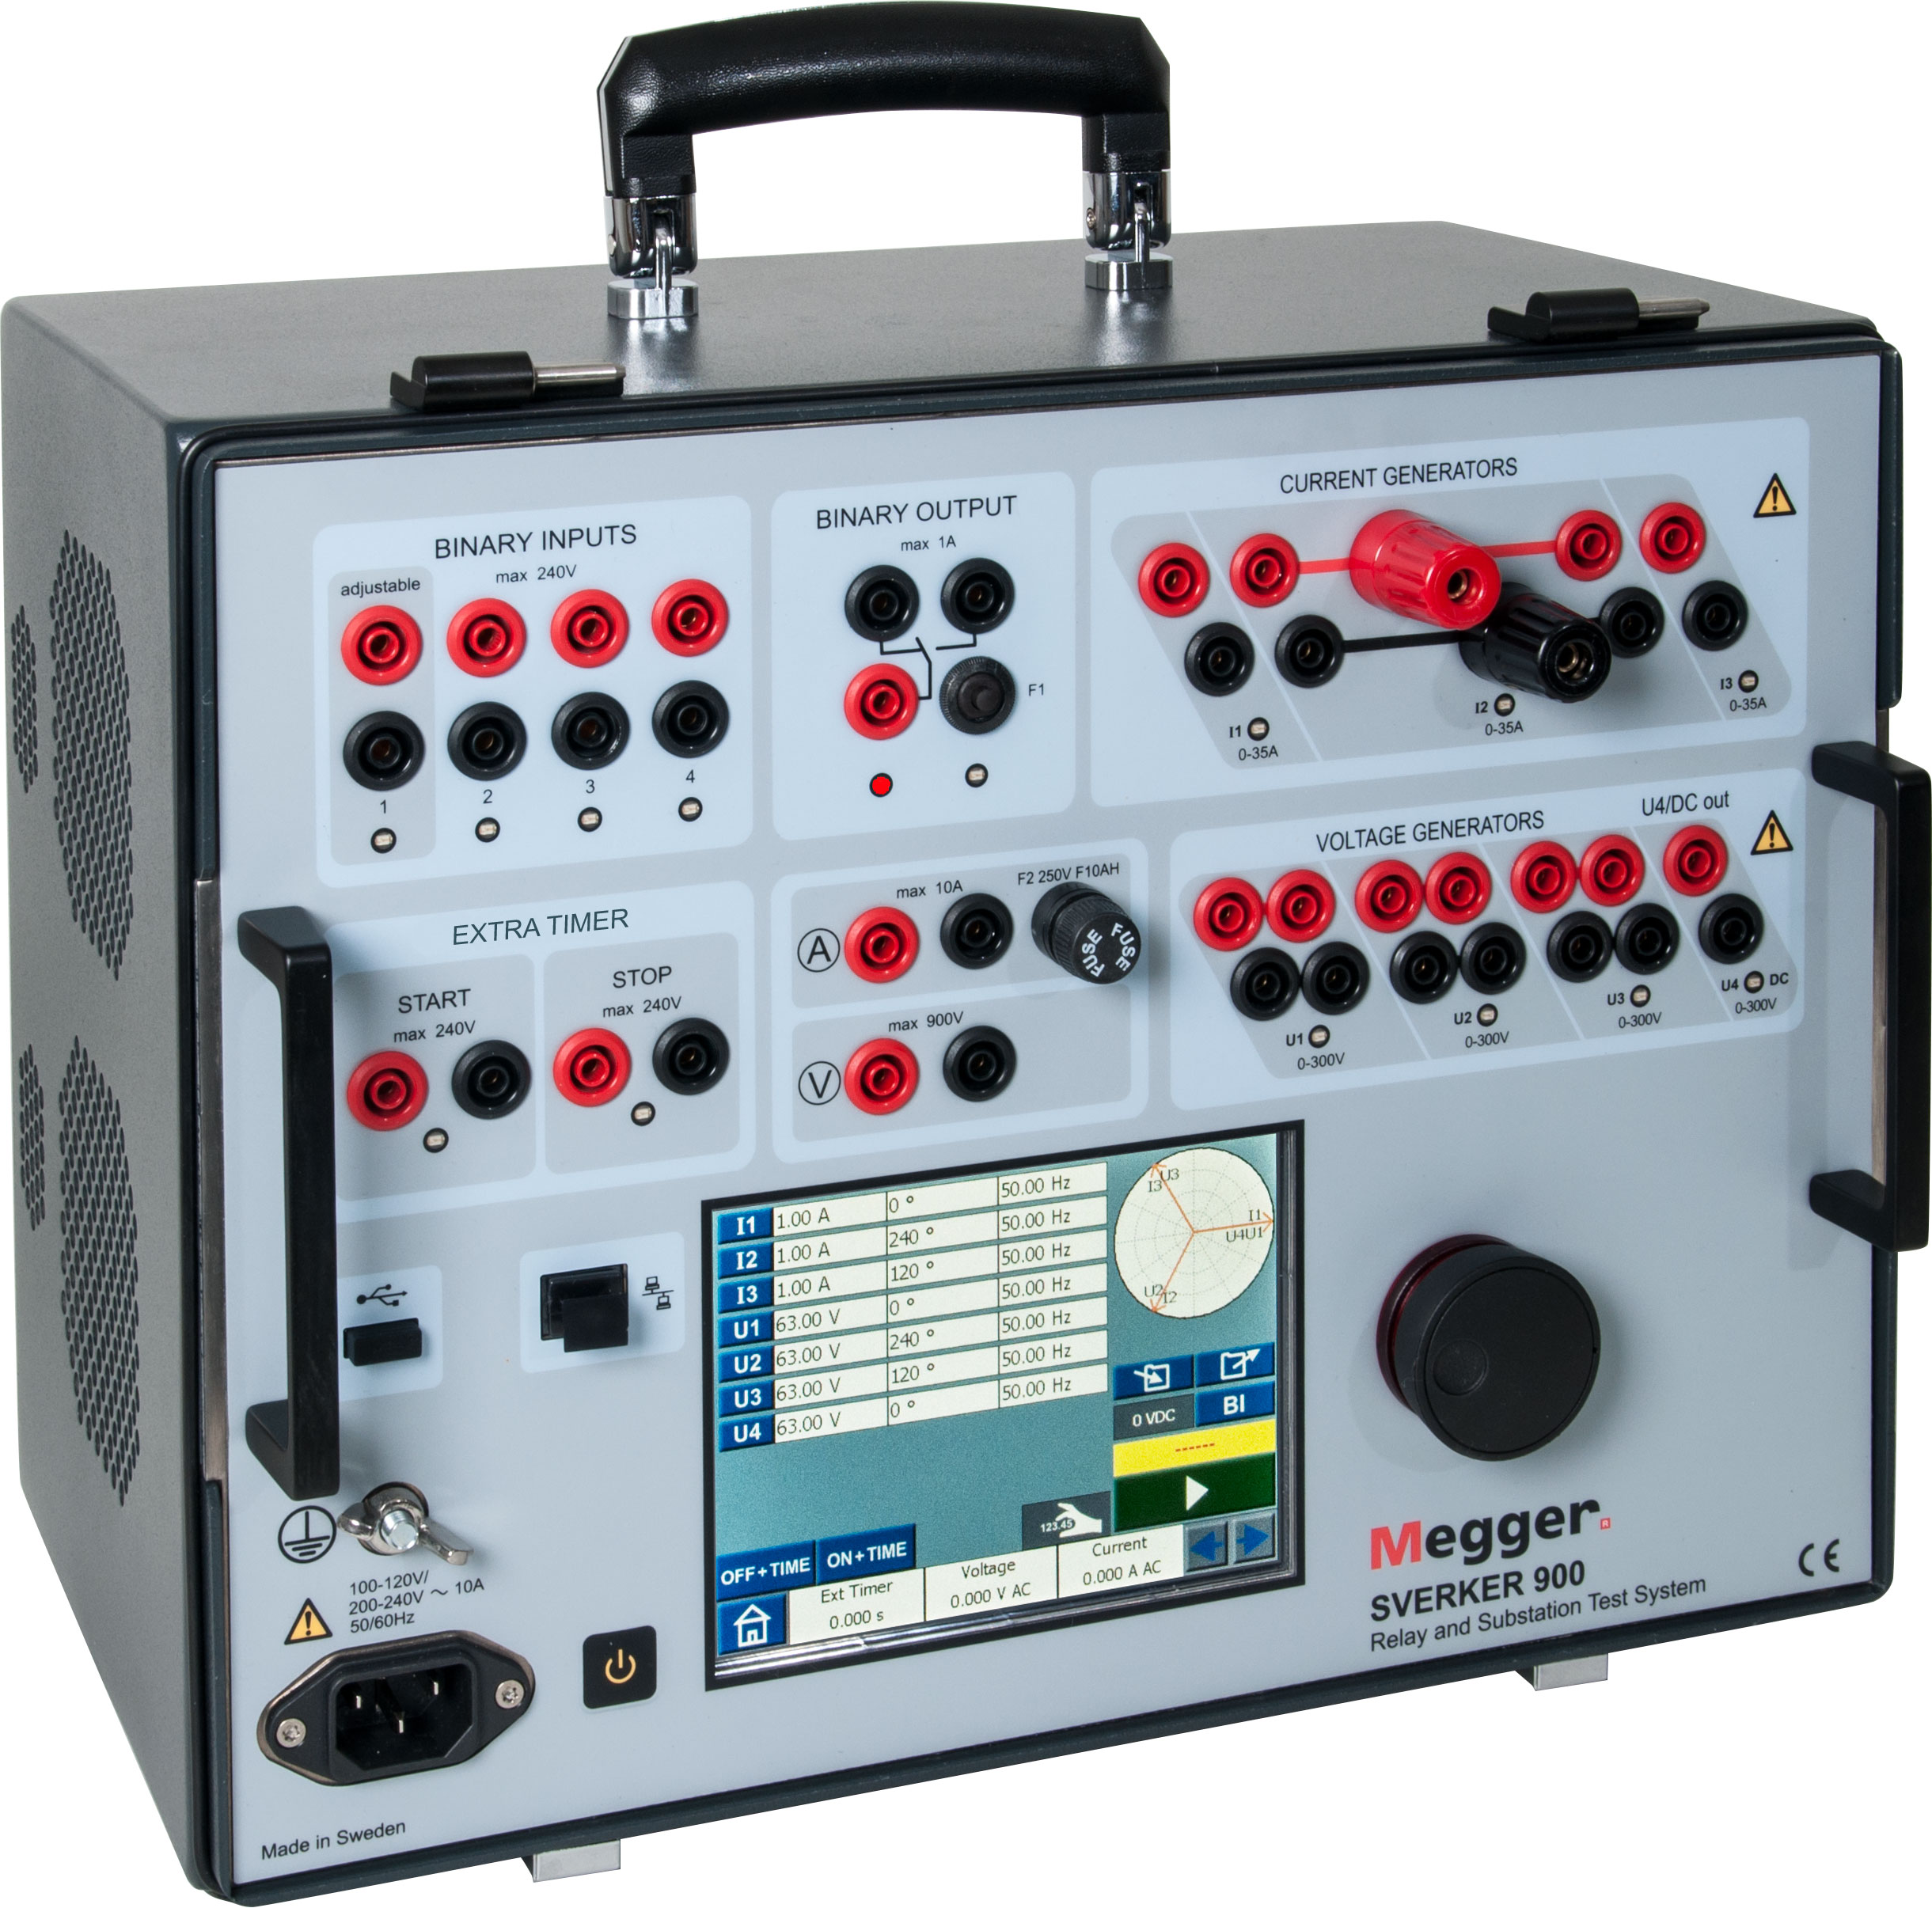 Testing Substations Stevo Electric Types Of Relays Relay And Substation Test System